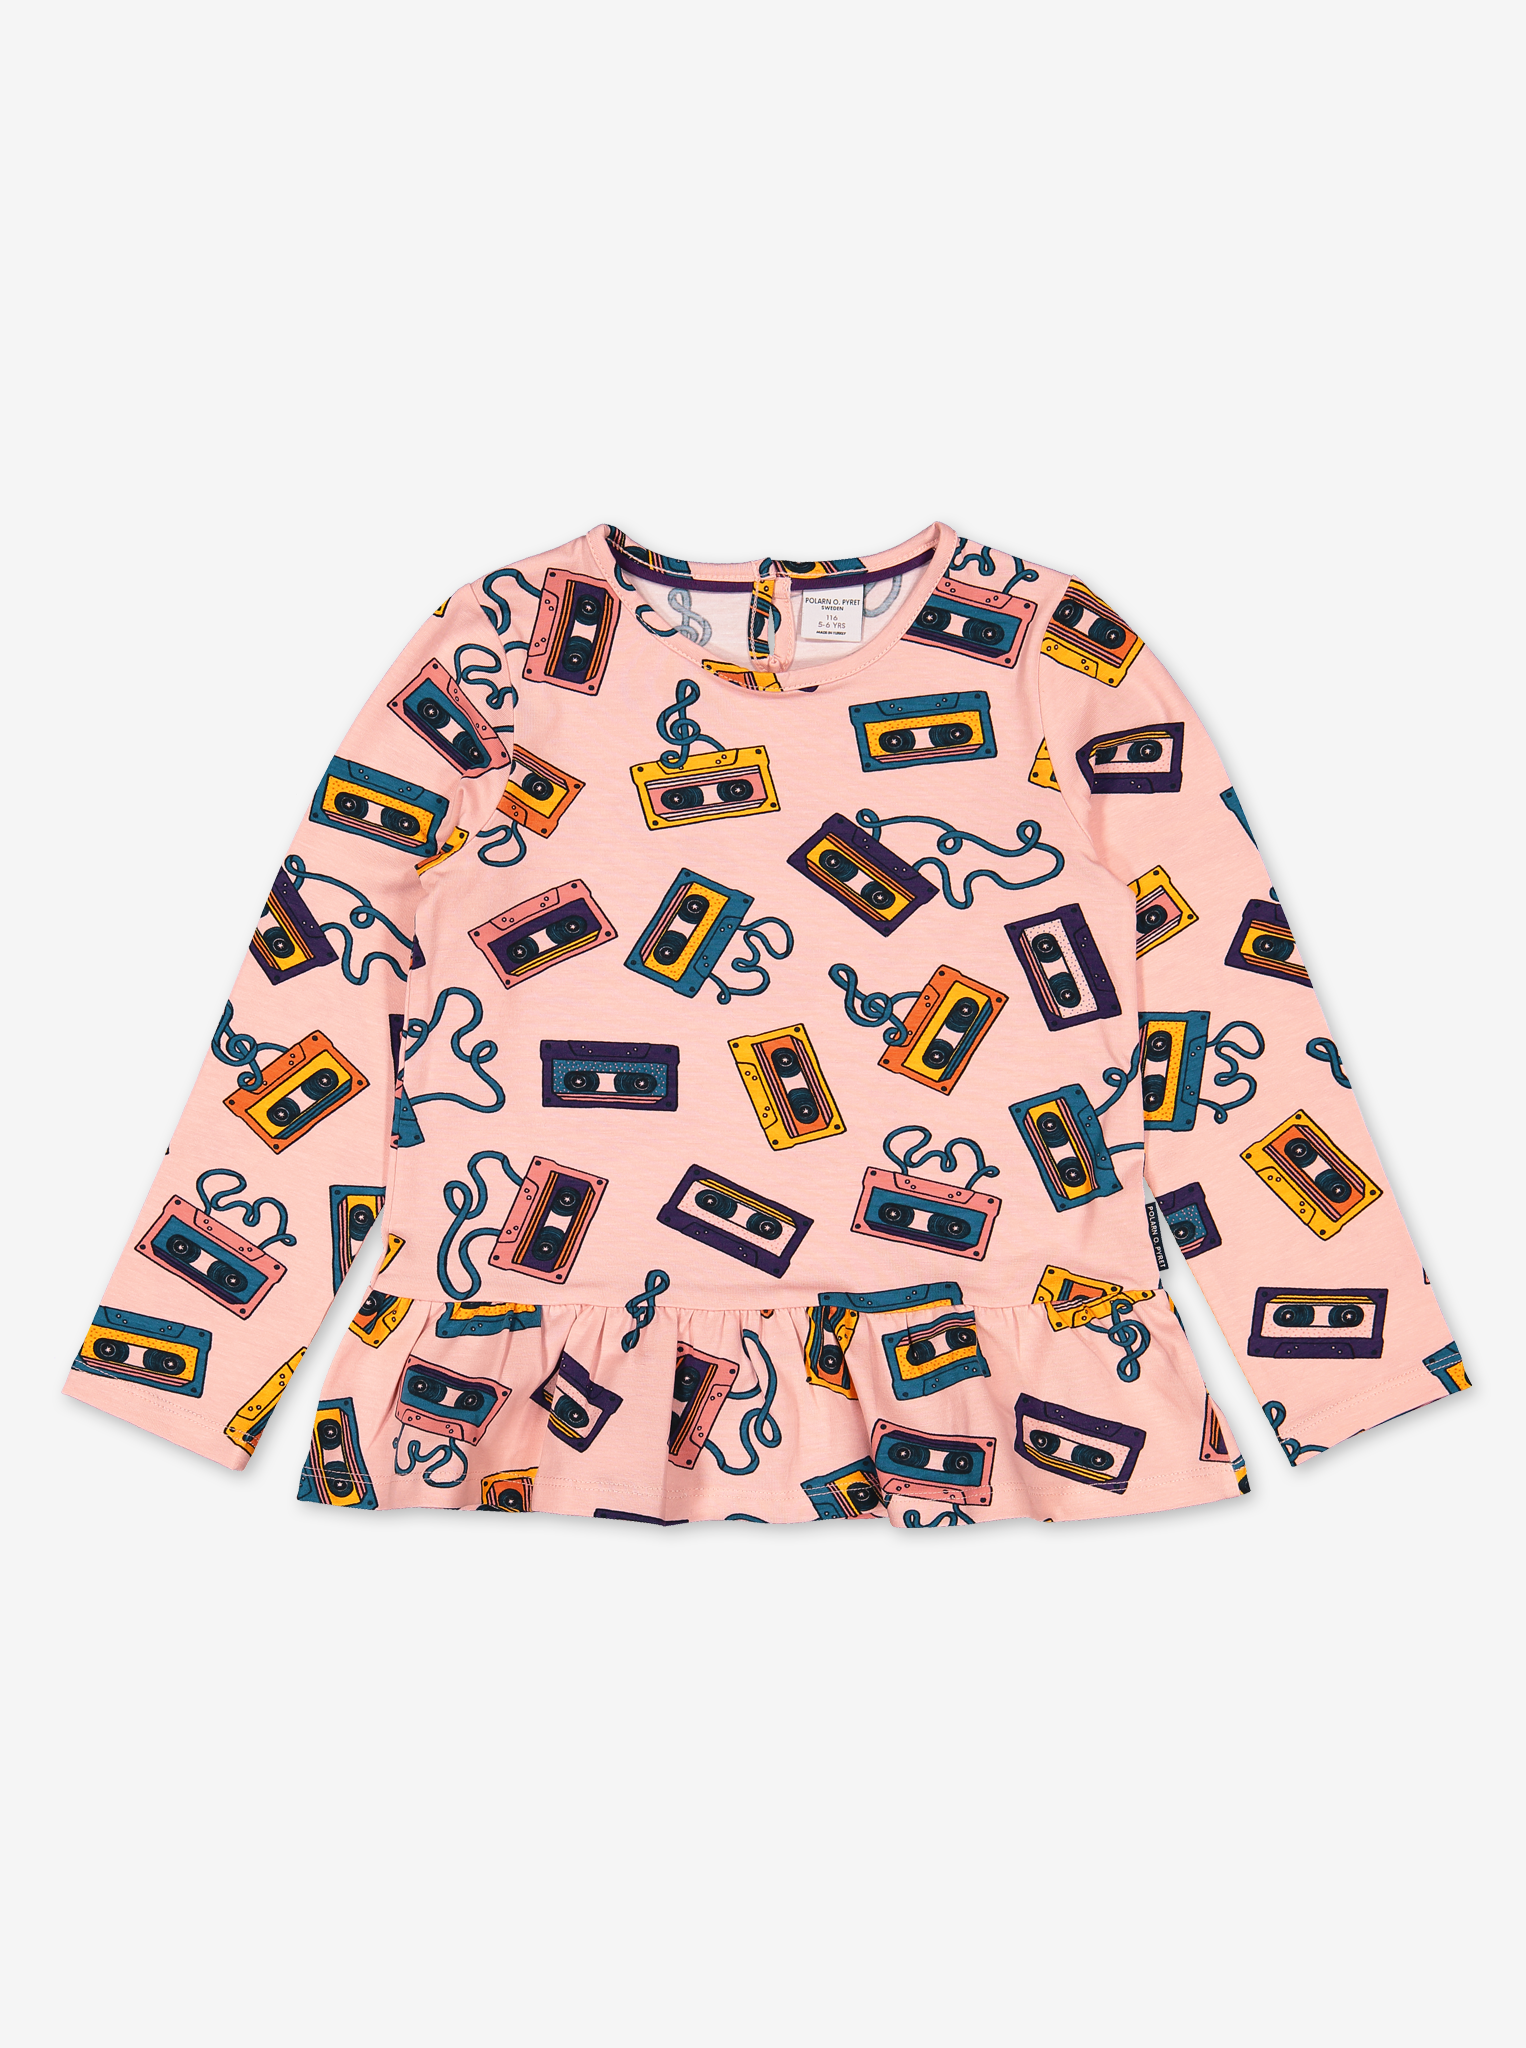 Mixed Tape Kids Top